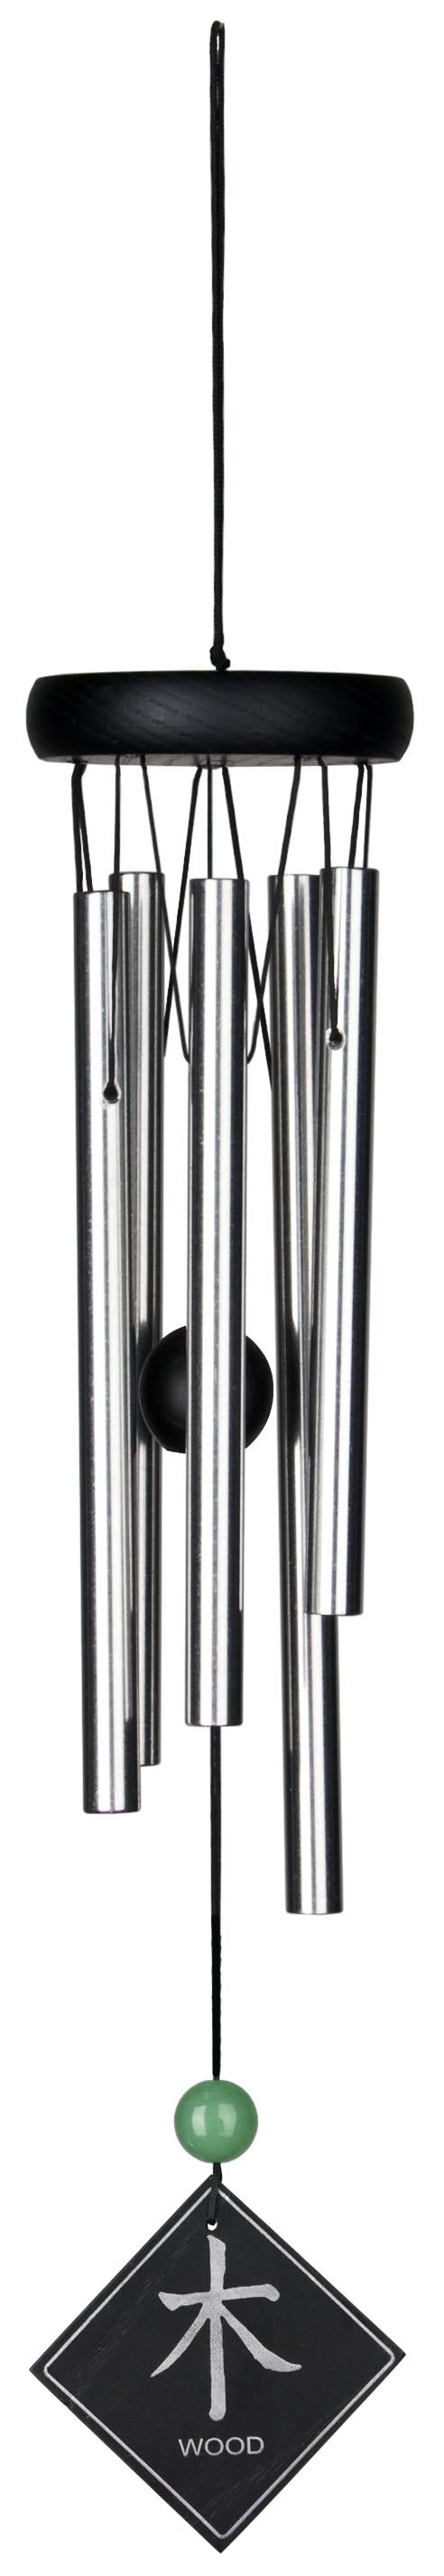 Carillon Feng Shui by Woodstock chimes